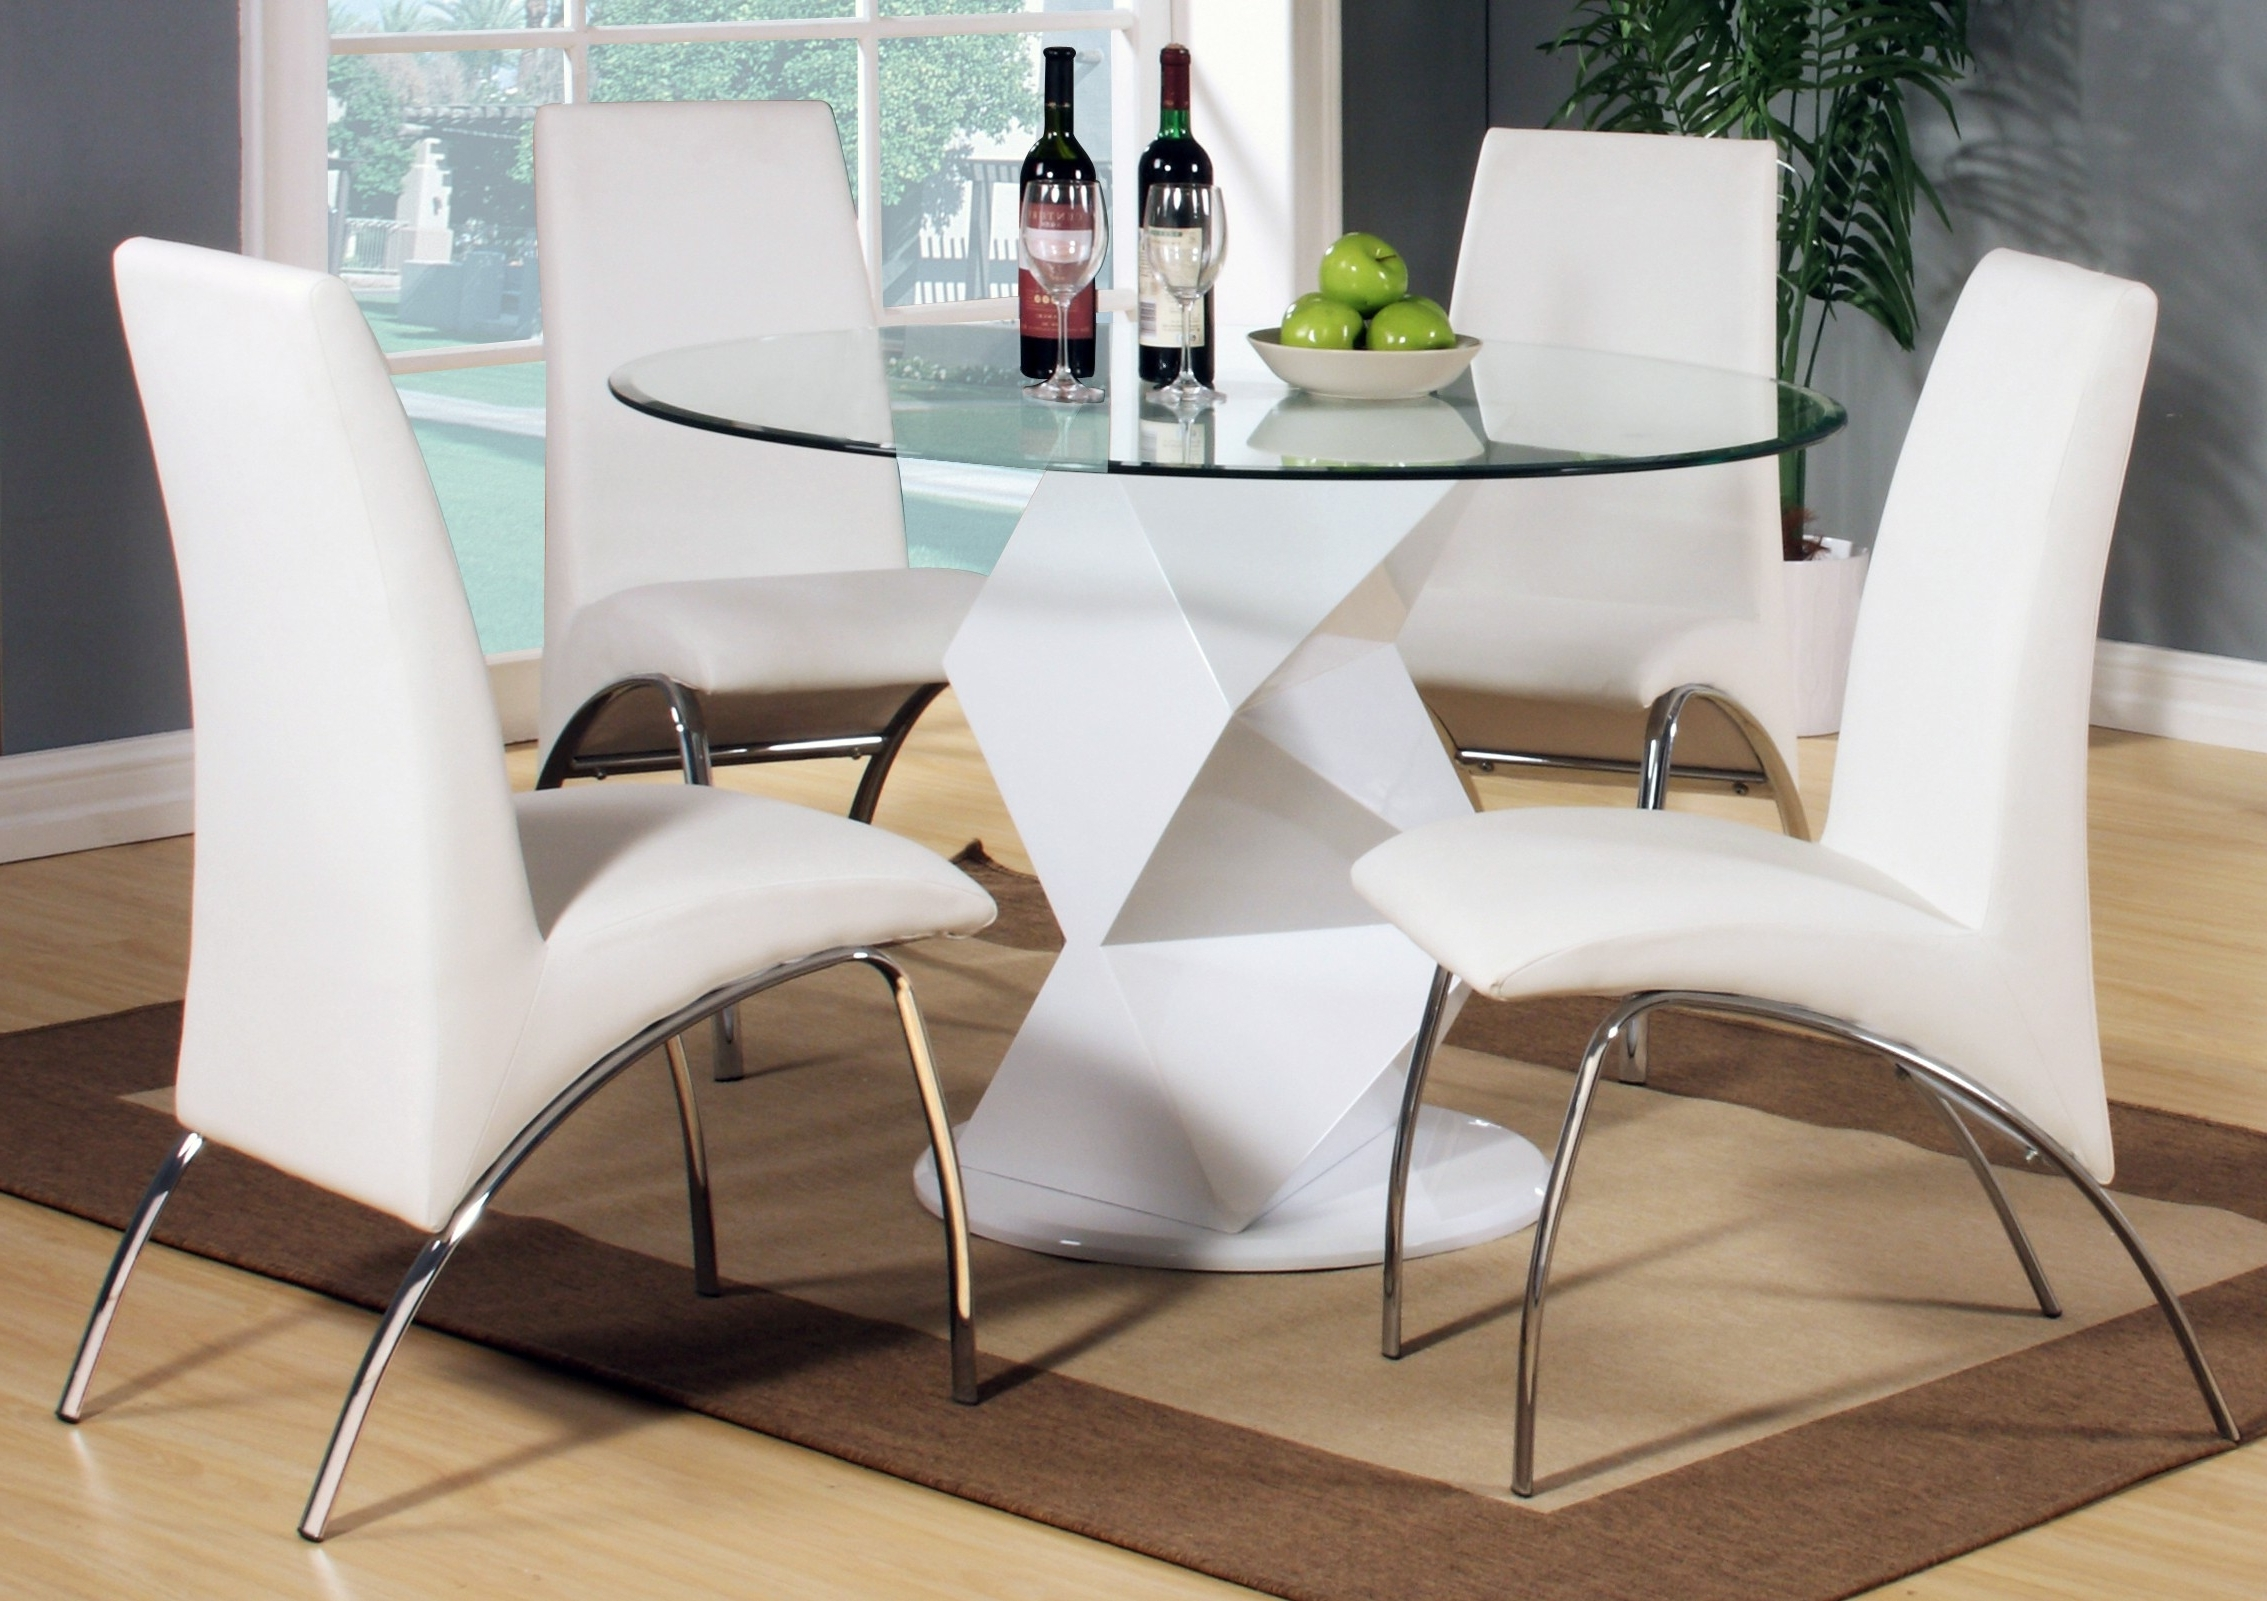 White Gloss Dining Tables Sets Pertaining To Best And Newest Finn White High Gloss Round Dining Table Set 4 Seater (View 21 of 25)